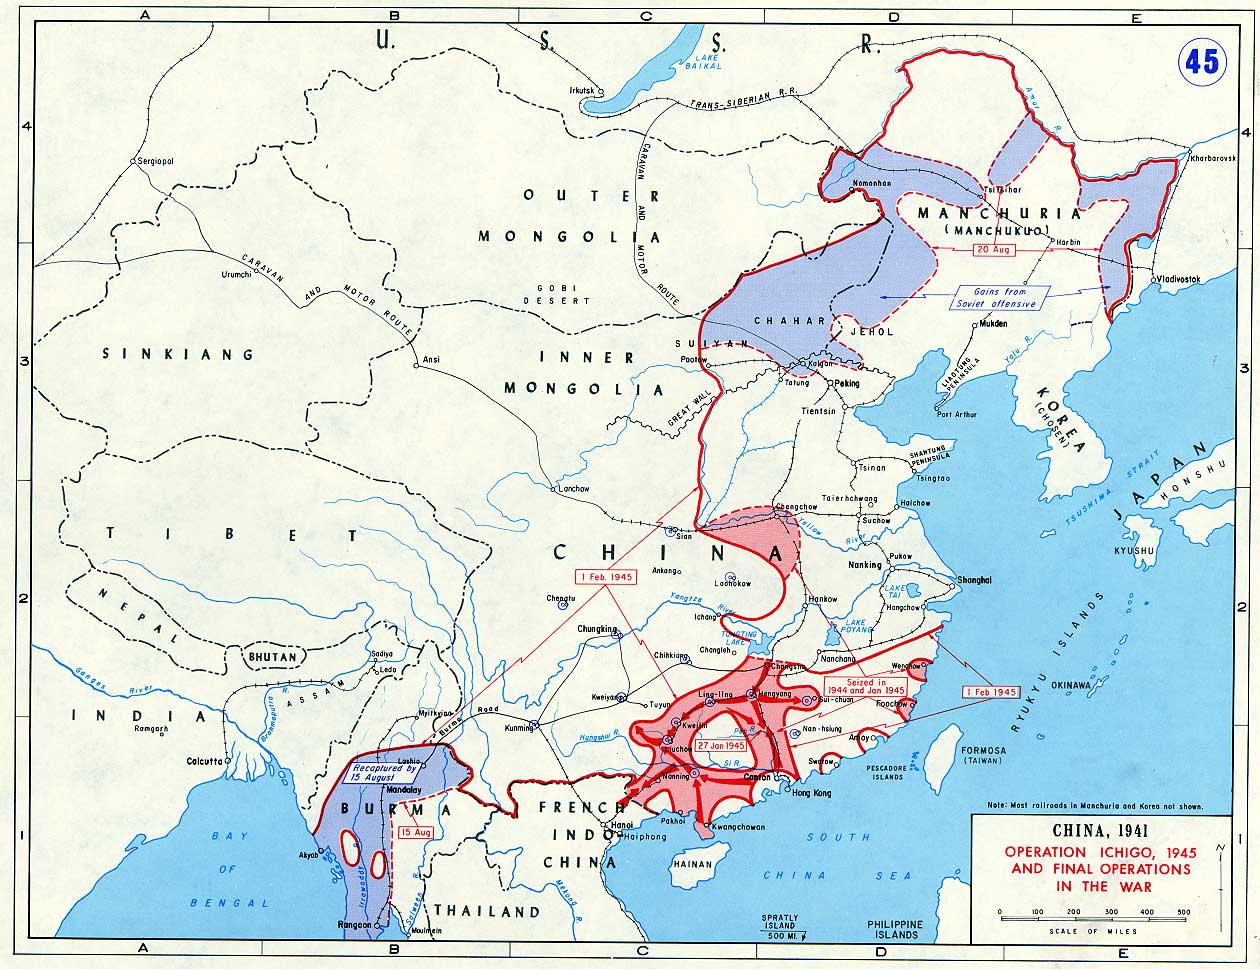 Image ww2 asia map 45g axis allies wiki fandom powered by ww2 asia map 45g gumiabroncs Images